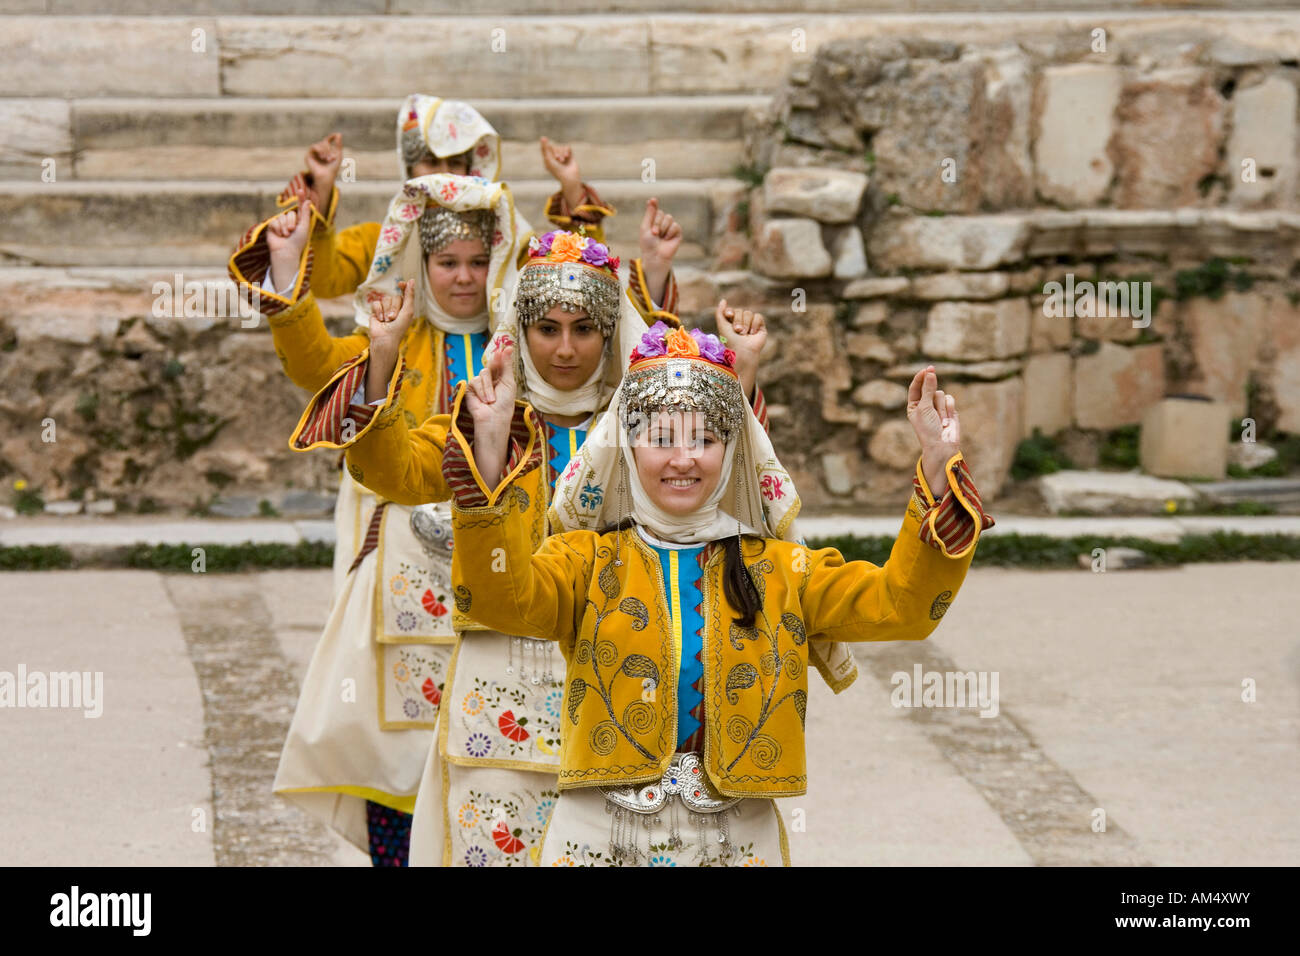 Traditional Turkish folk dance troupe - Stock Image